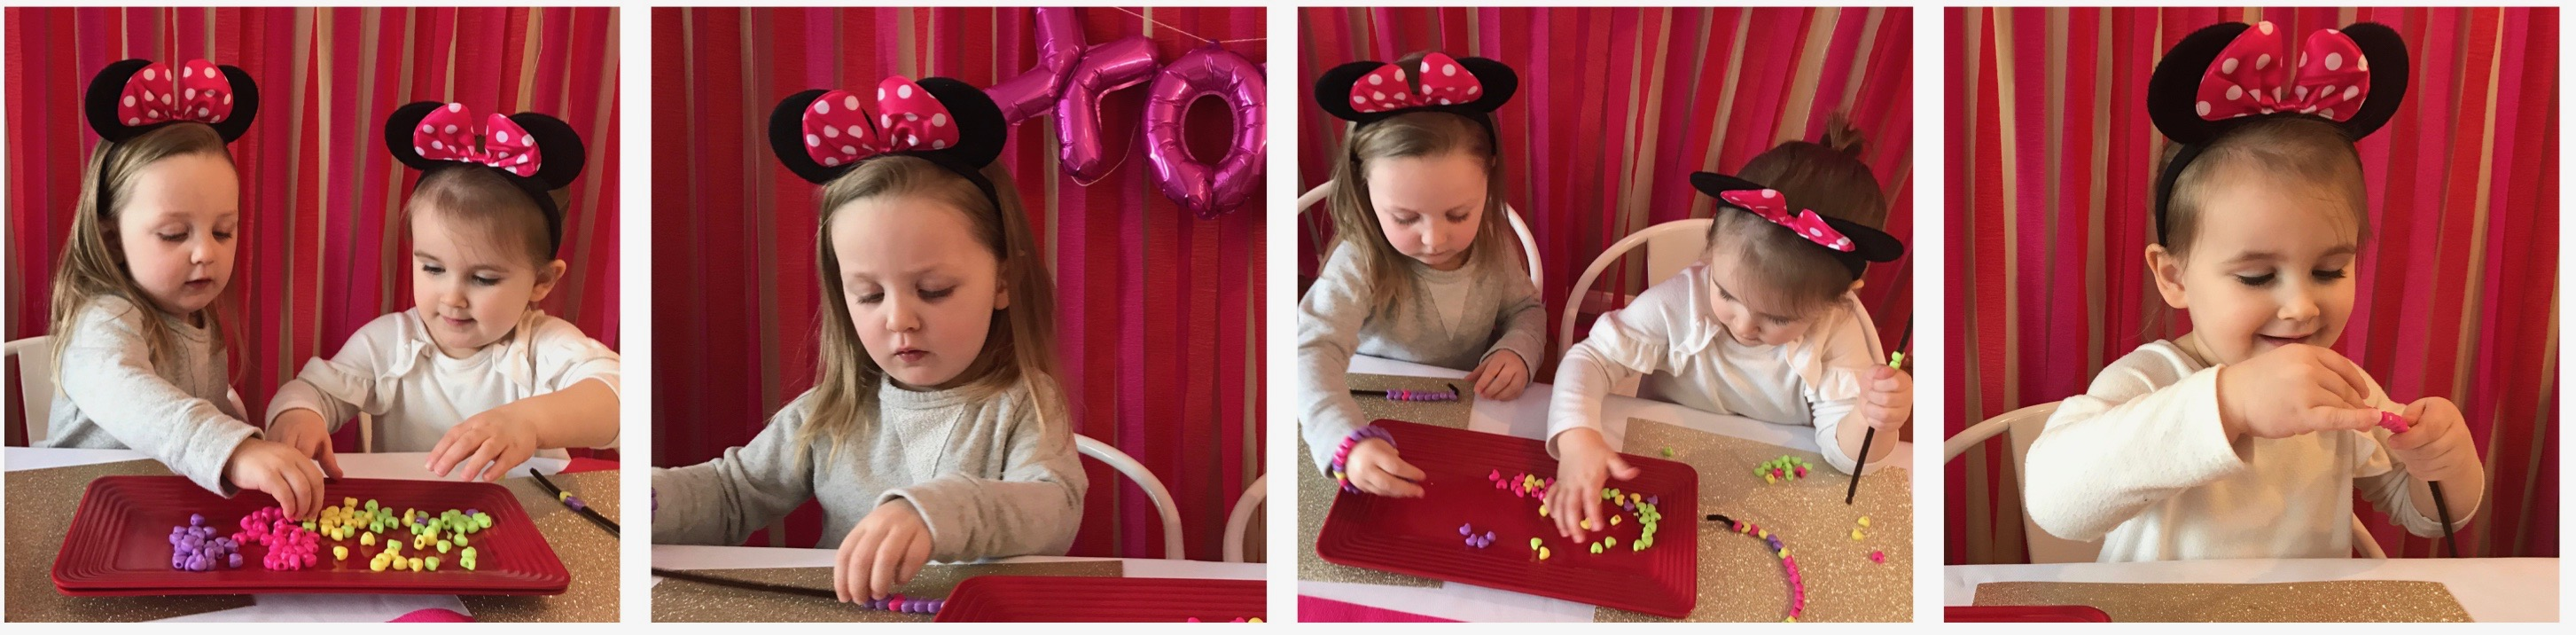 Minnie Mouse Valentine's Day Party Ideas via 11cupcakes #MinnieMouse #MinnieValentine #Valentinesparty